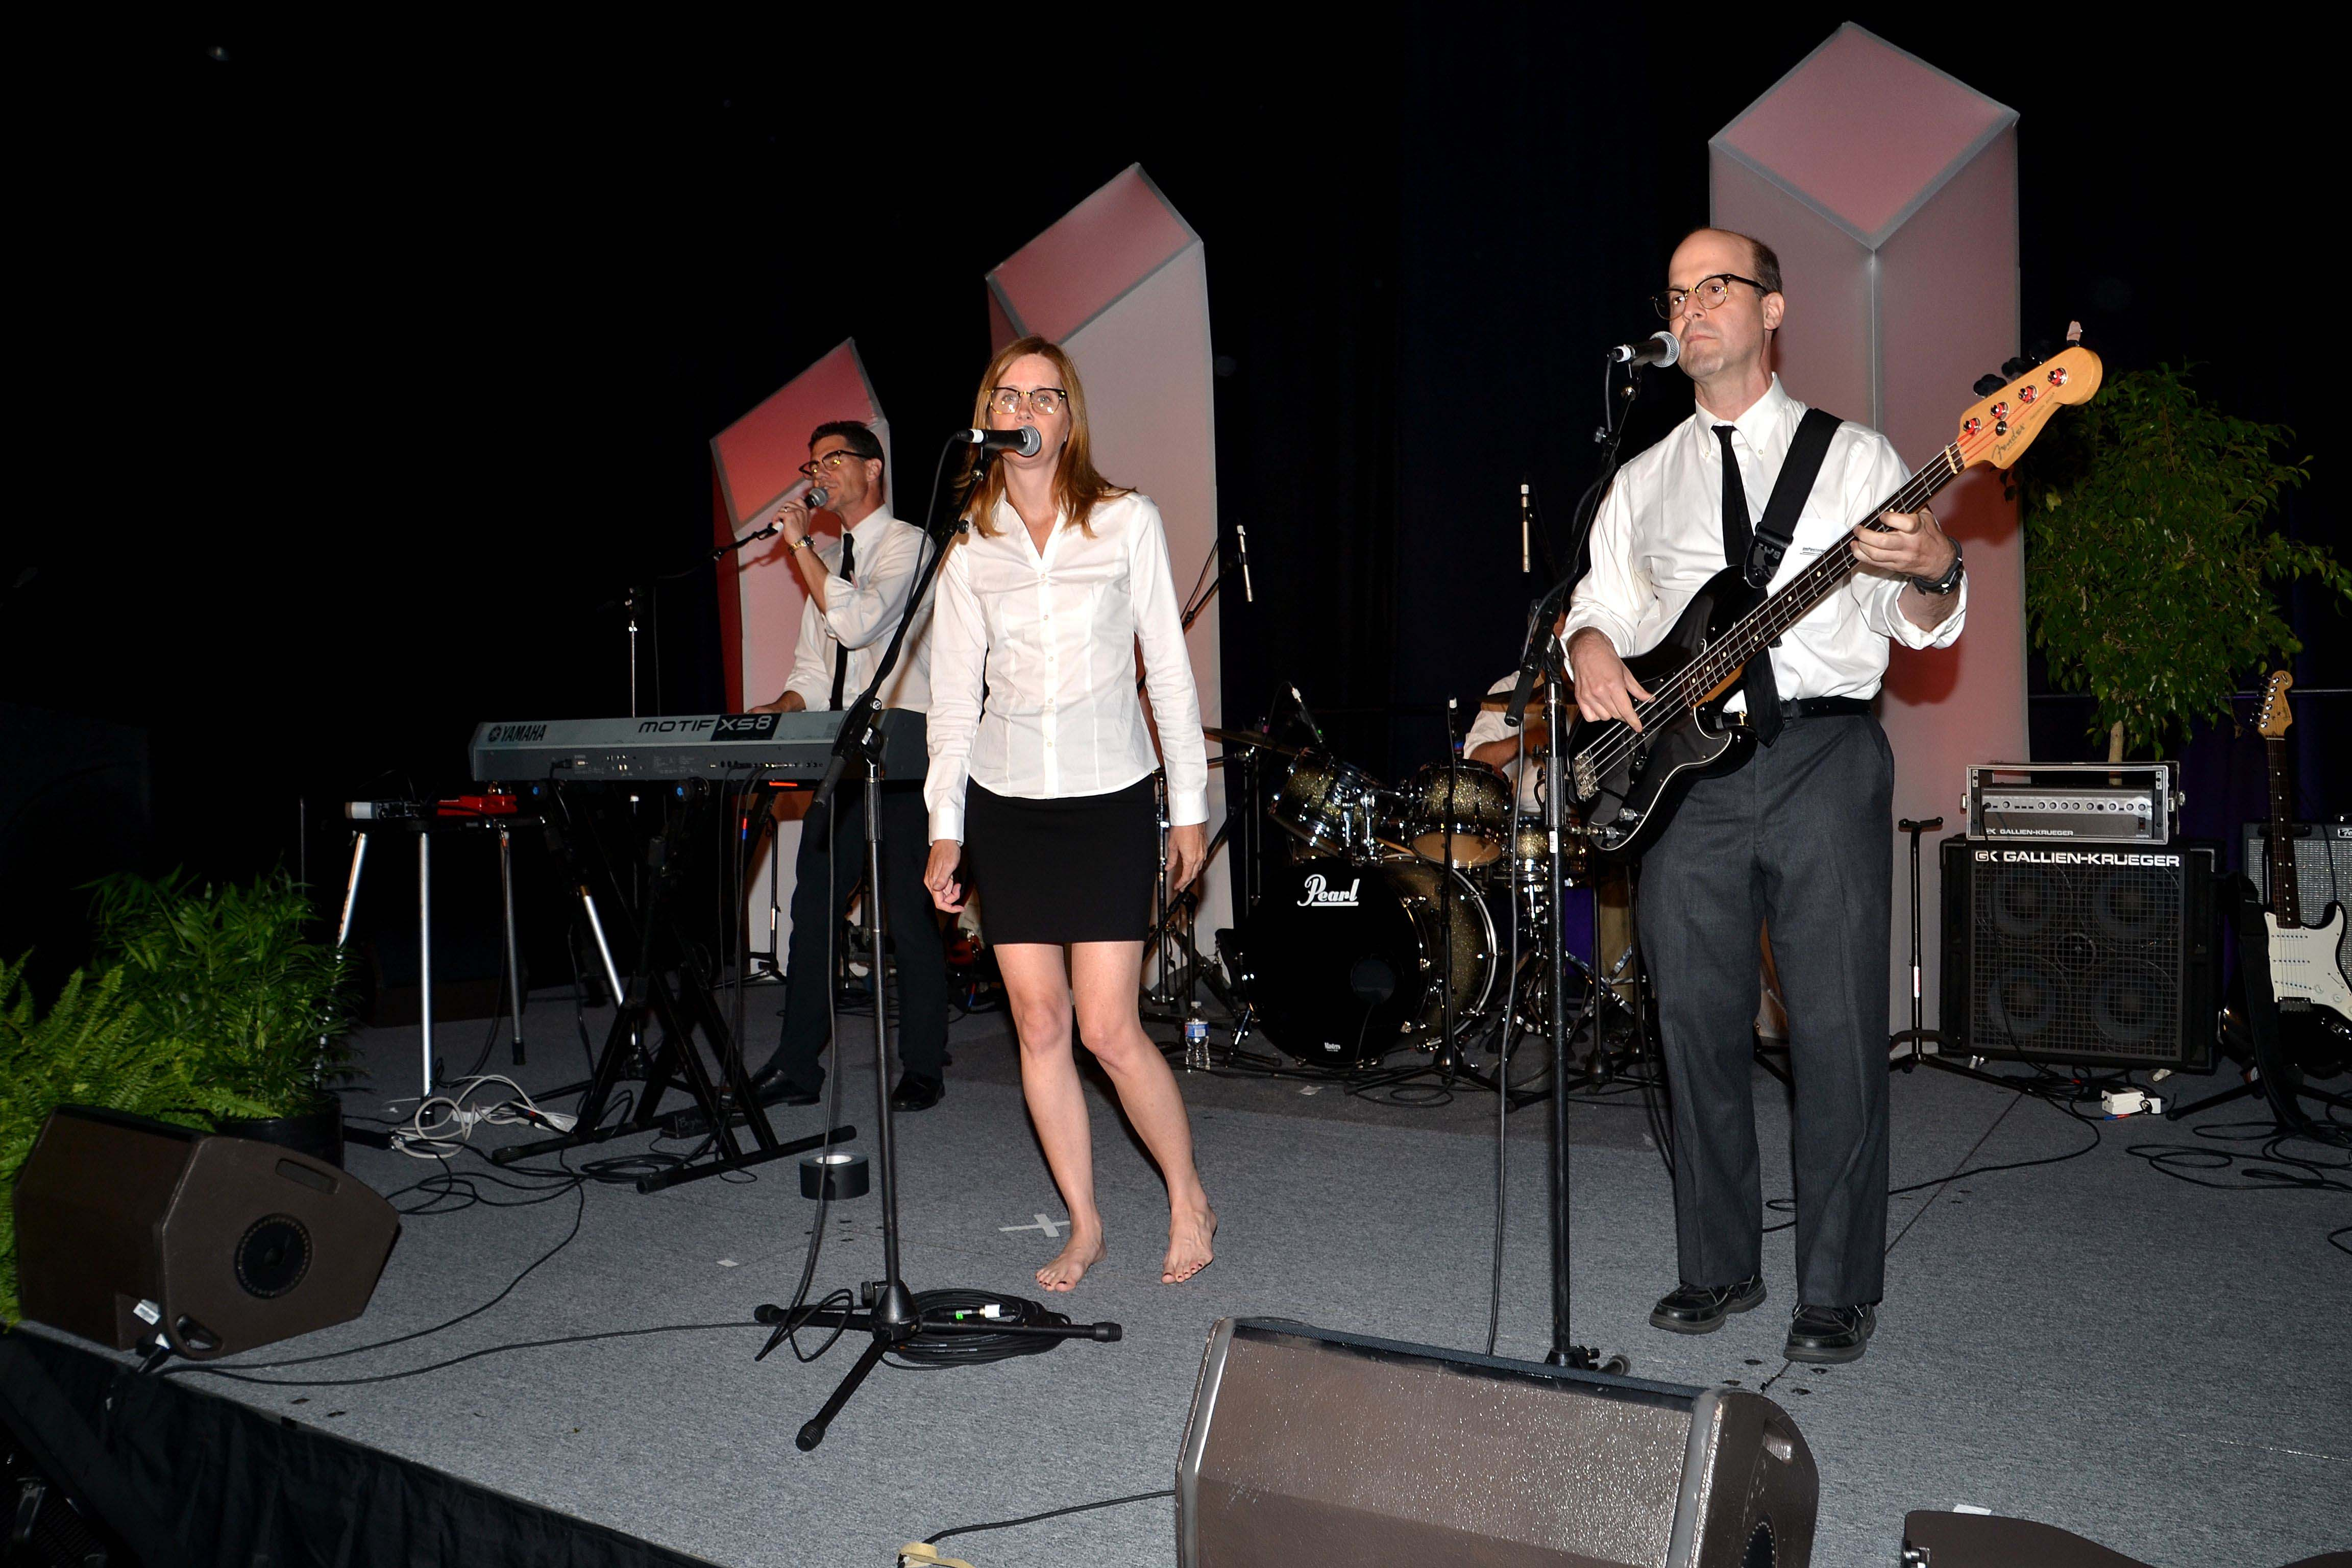 The Imposteriors (from left): Brad Carlin, Jennifer Hill, and Mark Glickman